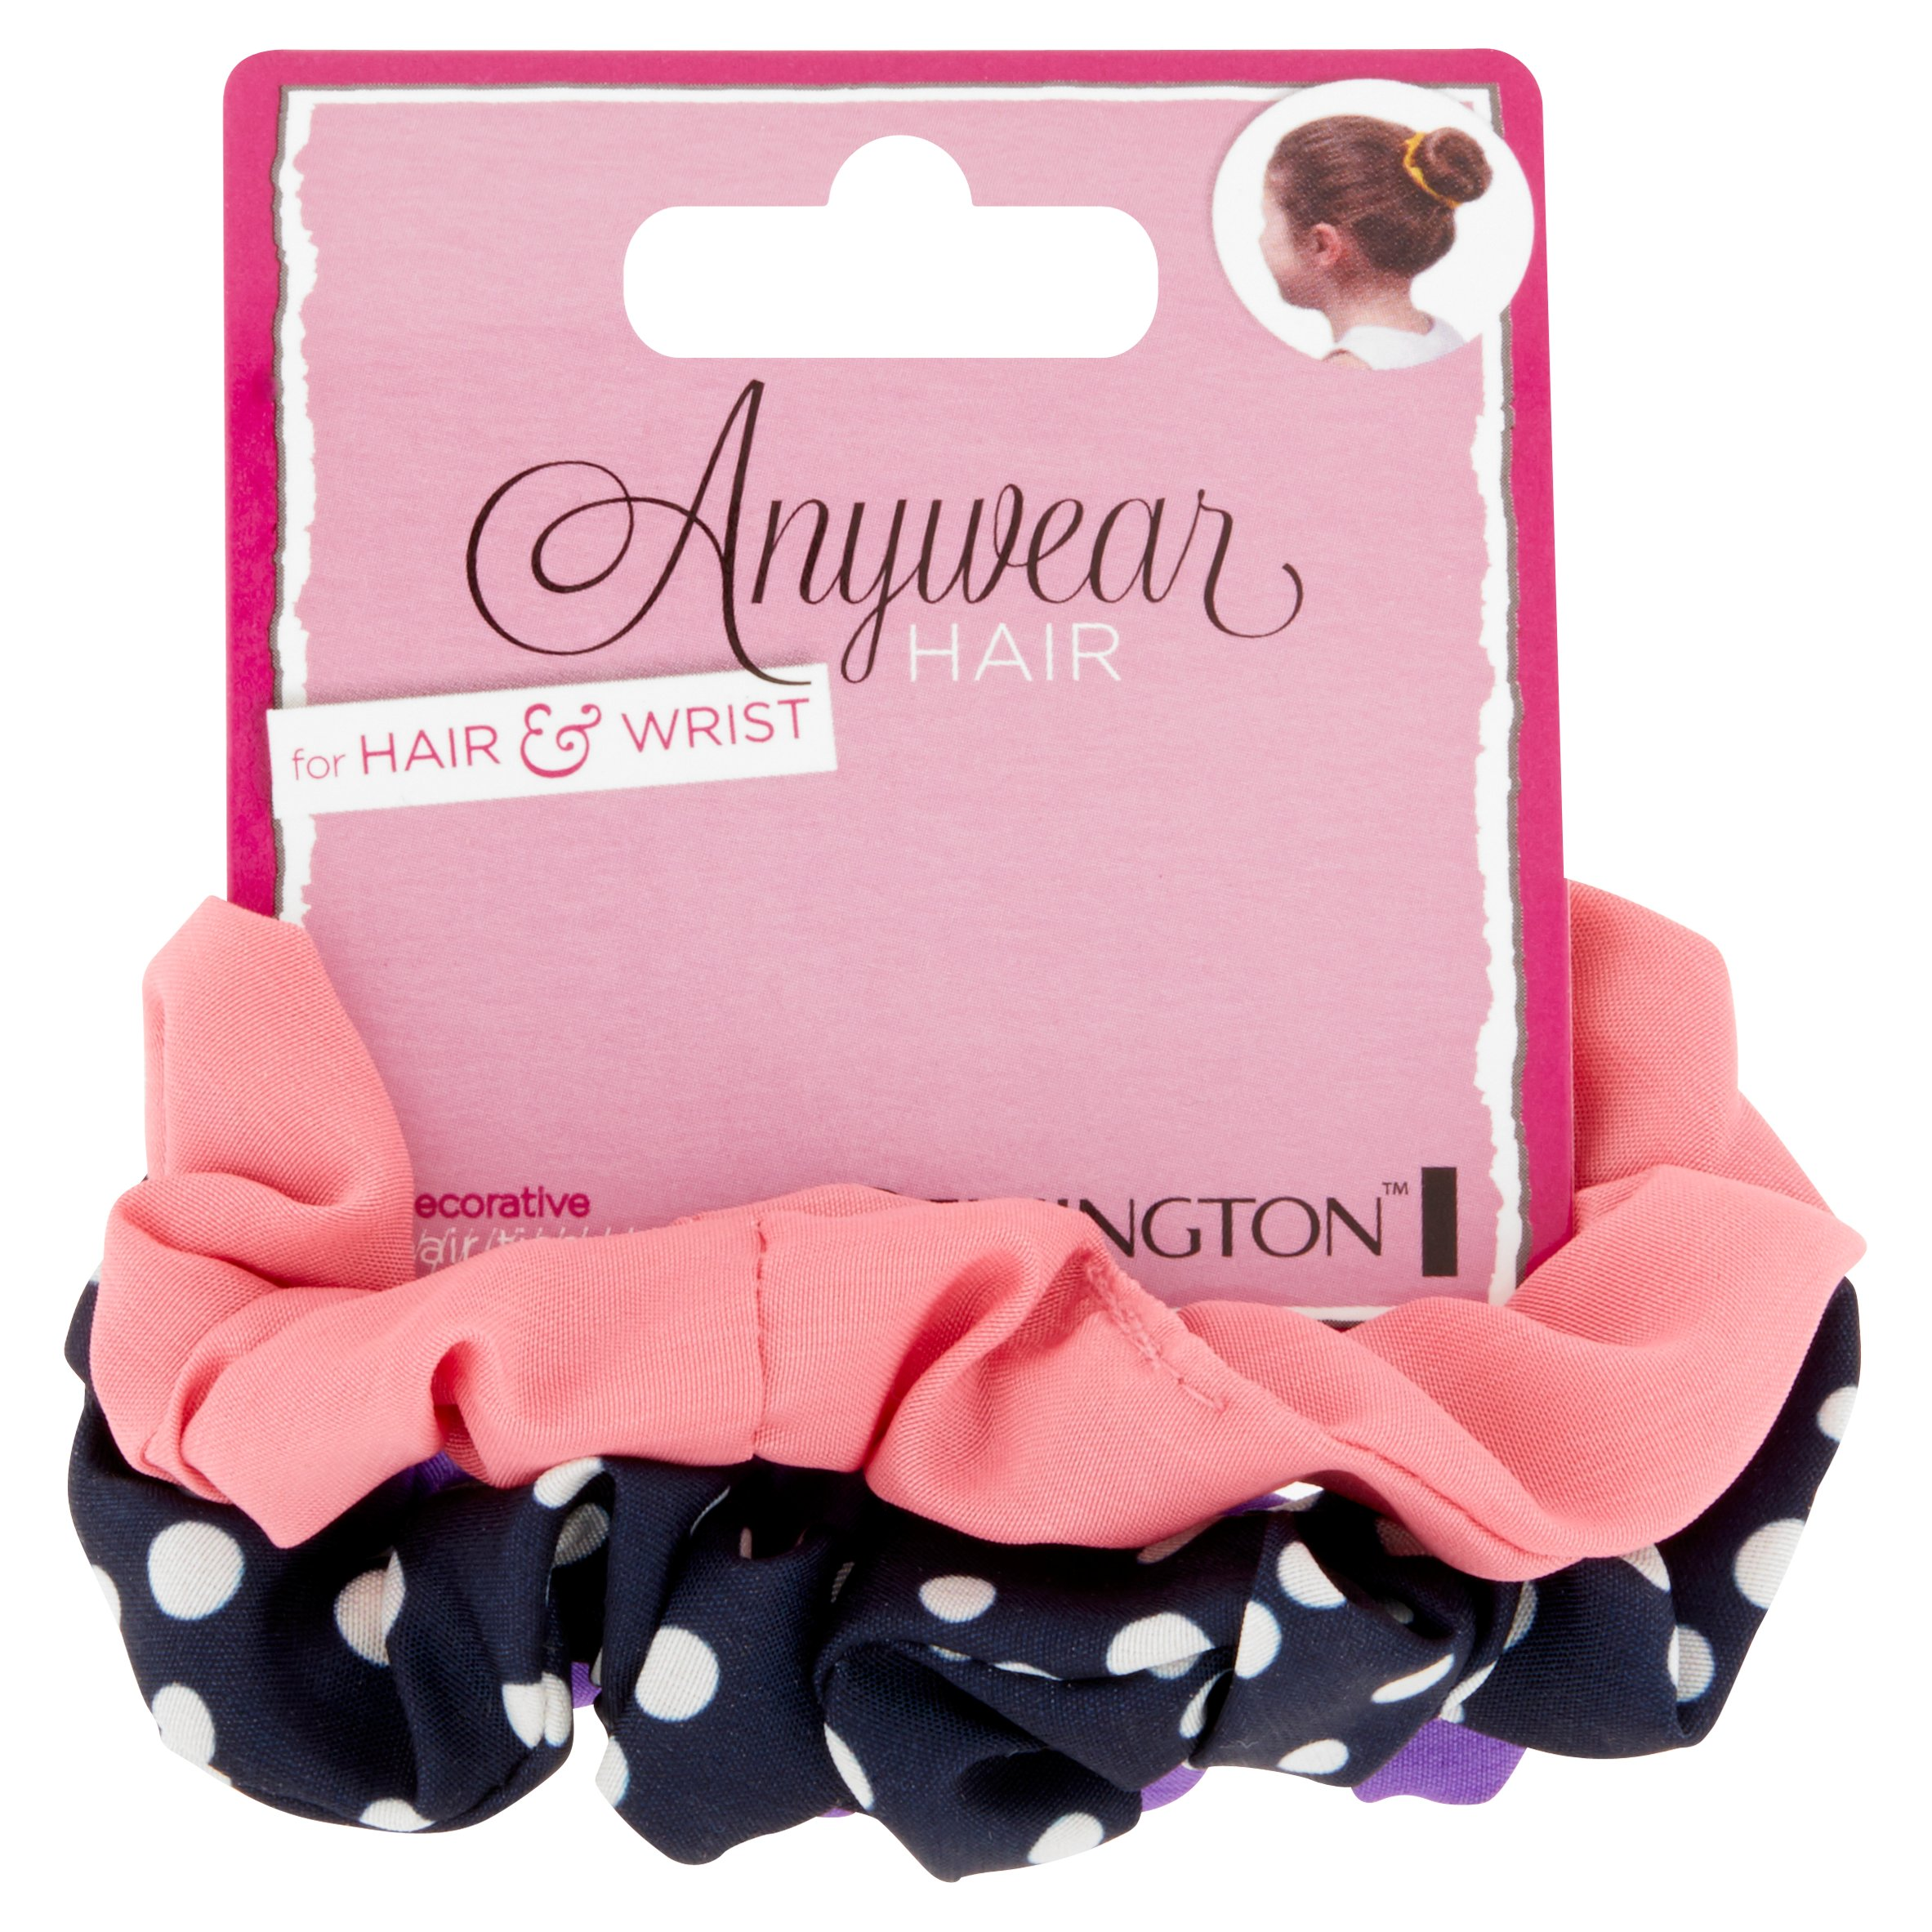 Remington Anywear Hair Decorative Hair Ties for Hair & Wrist, 3 count